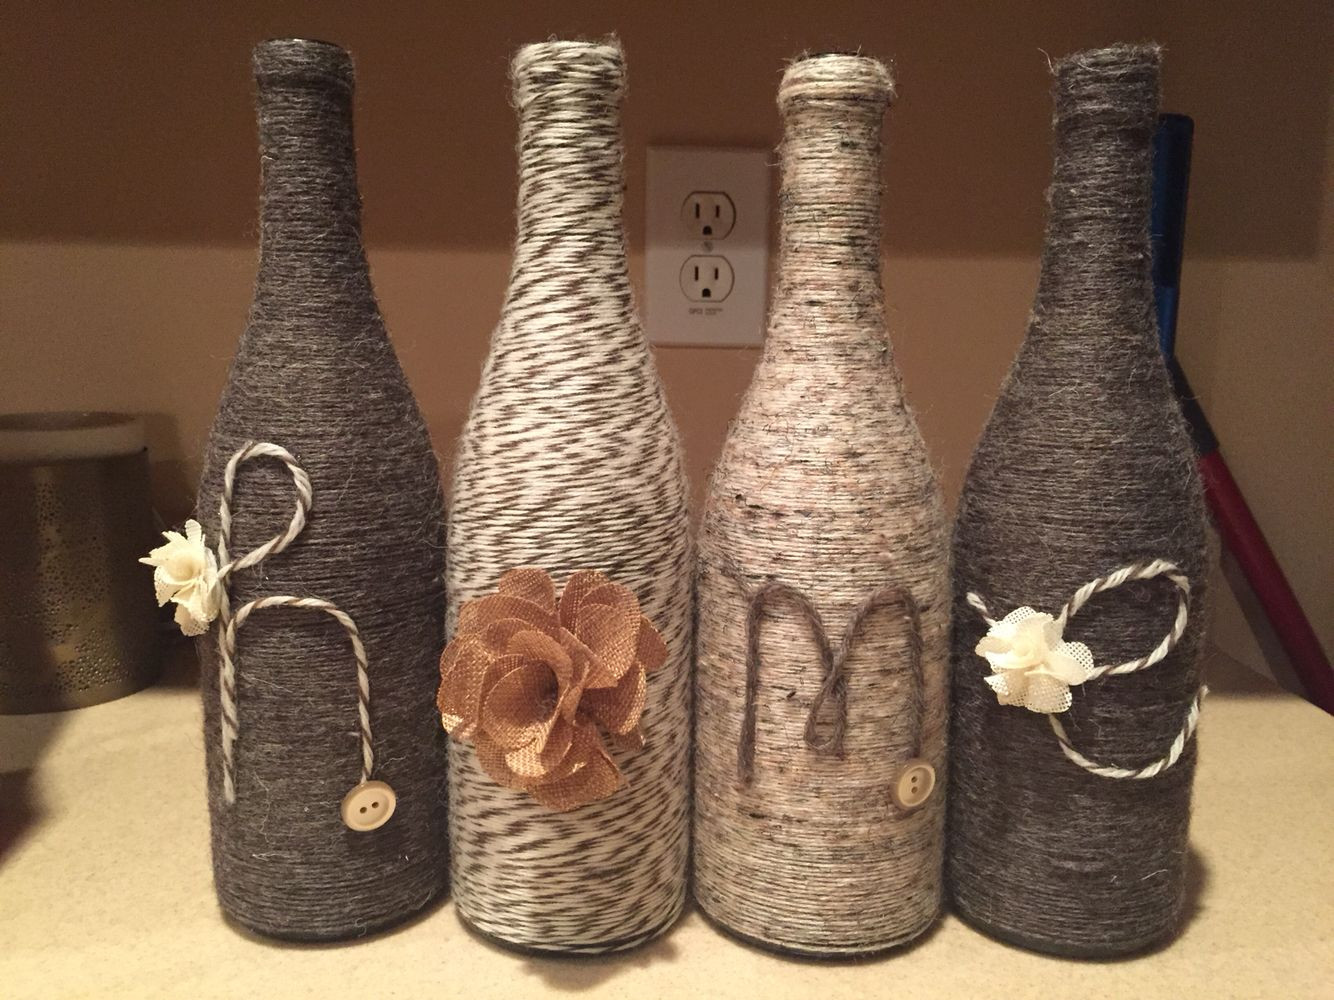 Wine Bottle Crafts Elegant Wine Bottles Decorated with Yarn Craft Time Of Luxury 40 Images Wine Bottle Crafts